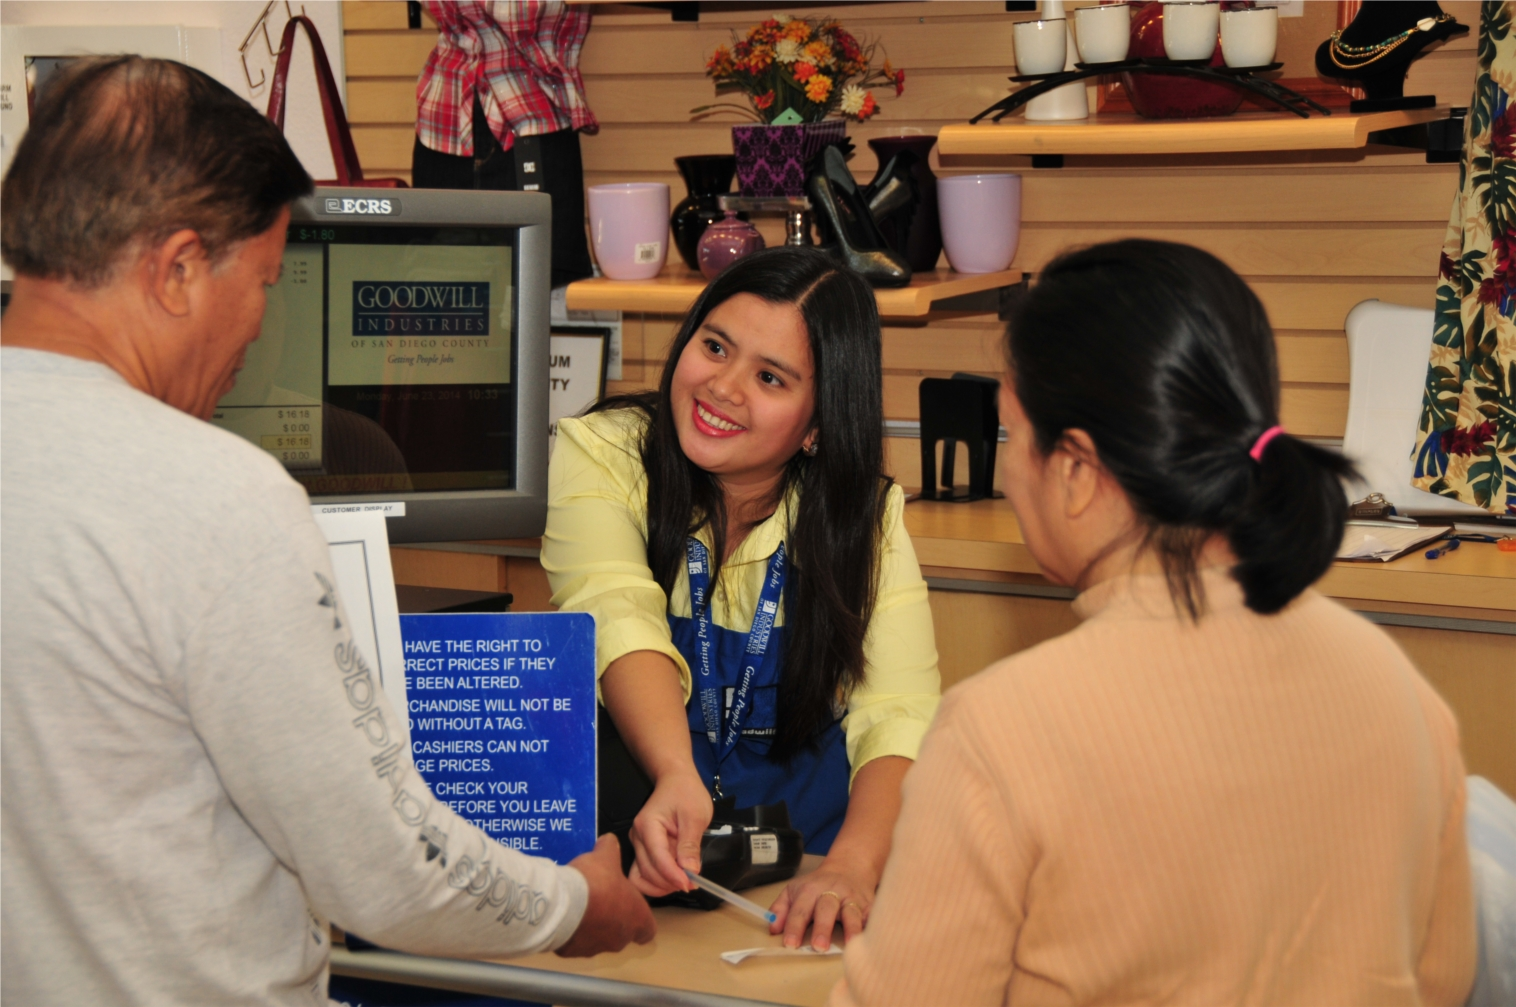 Goodwill has over 1,300 employees in San Diego County.  Leaders needed in retail, donations, support services, workforce development programs, recycling and much more!